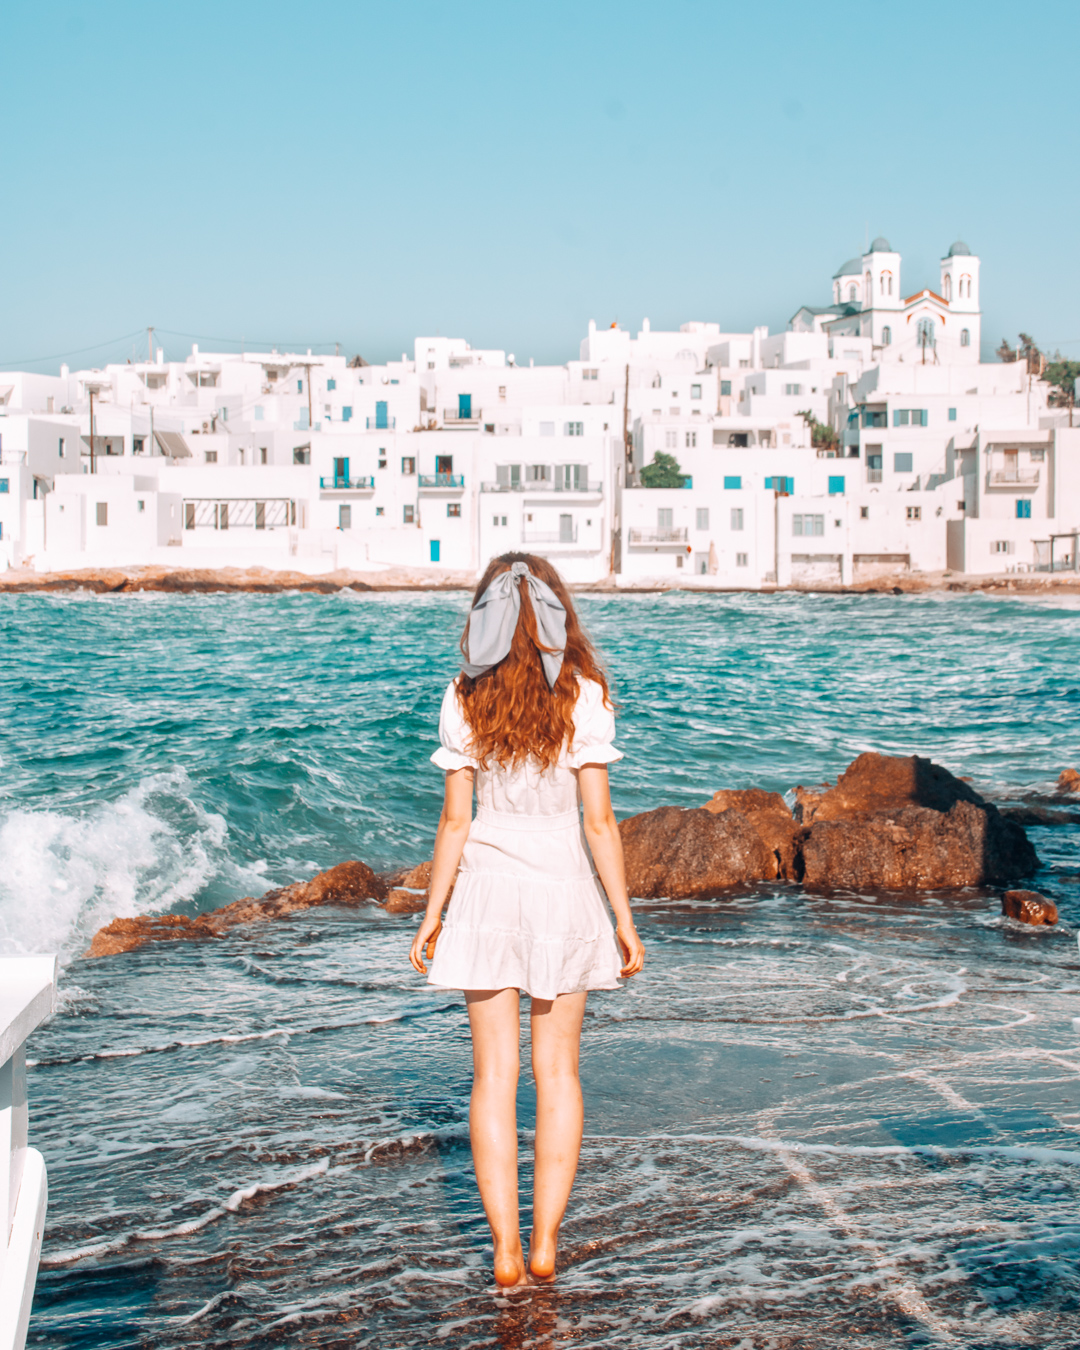 Viewpoint in Paros